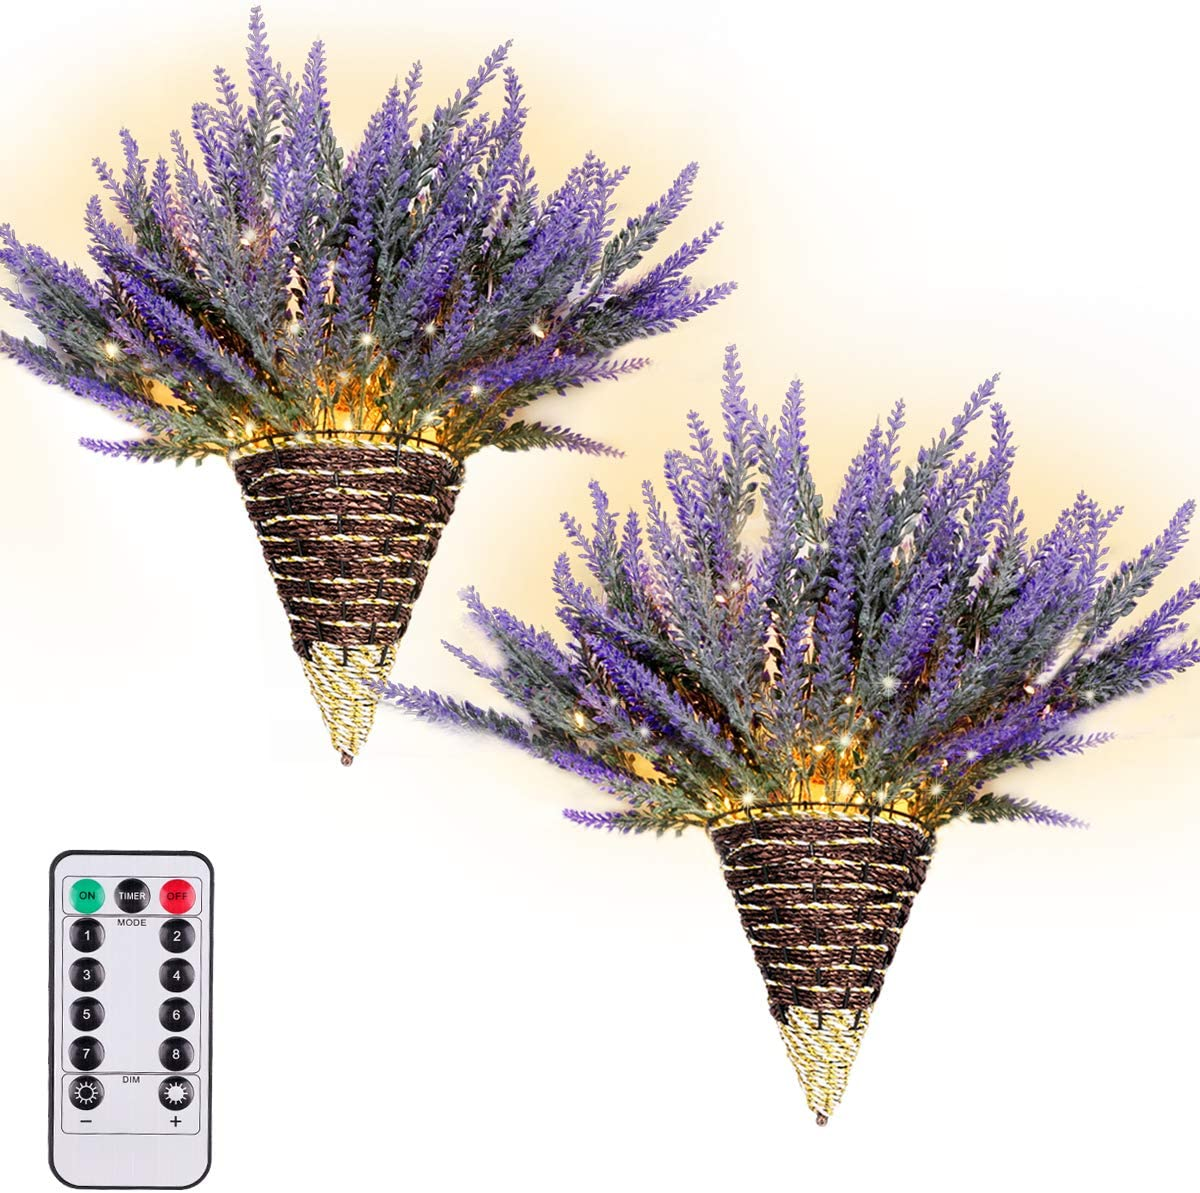 TianQin WY Artificial Lavender Plant,Handmade Wall Decor Hanging Design with LED Fairy Lights Living Decor,Farmhouse Kitchen Decorations Wall Home Decor Bathroom 2 Pack (Purple)